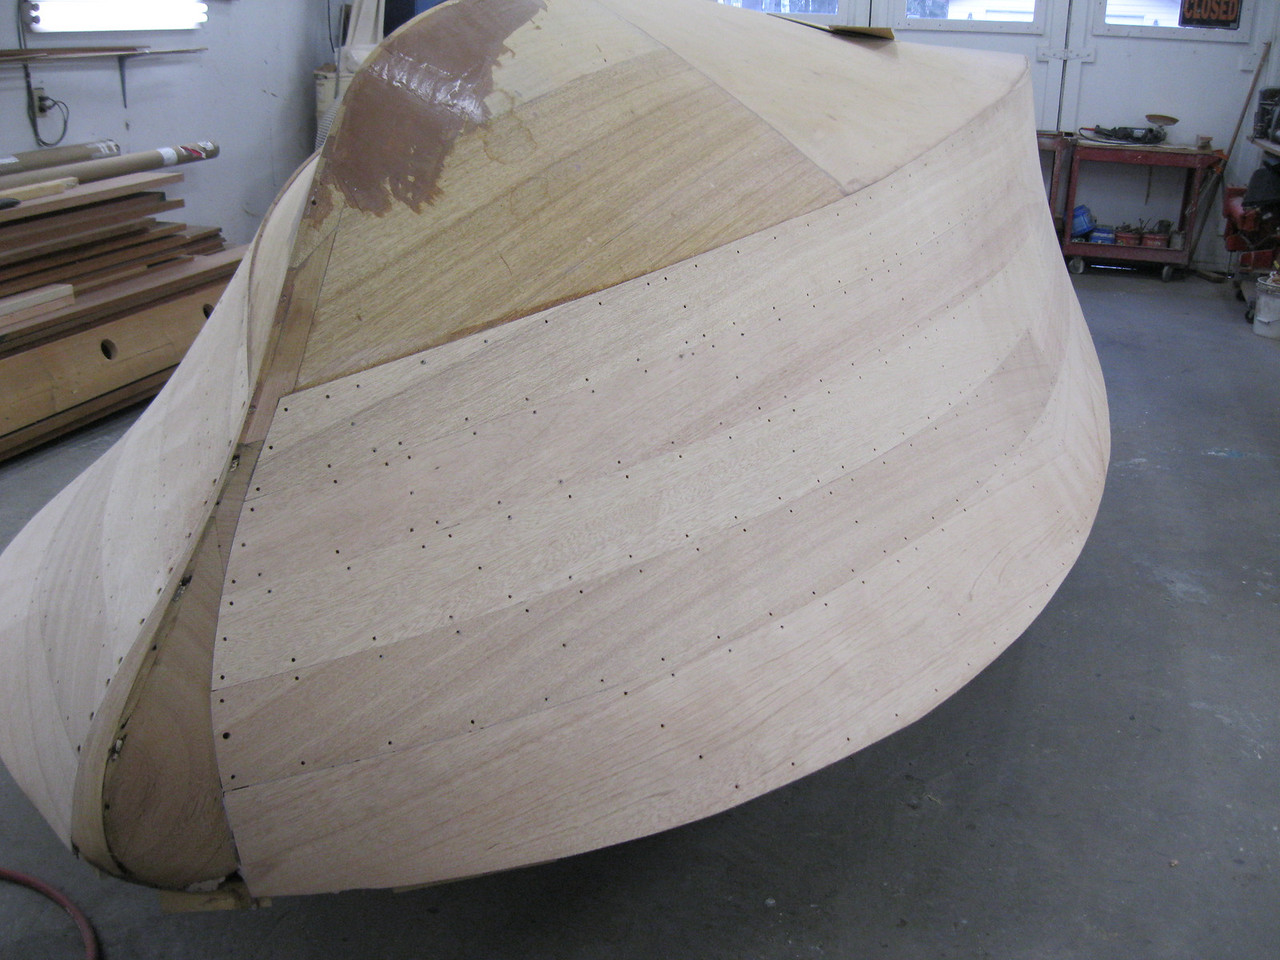 Starboard front view of the side sanded for the first time and ready to drill for plugs.